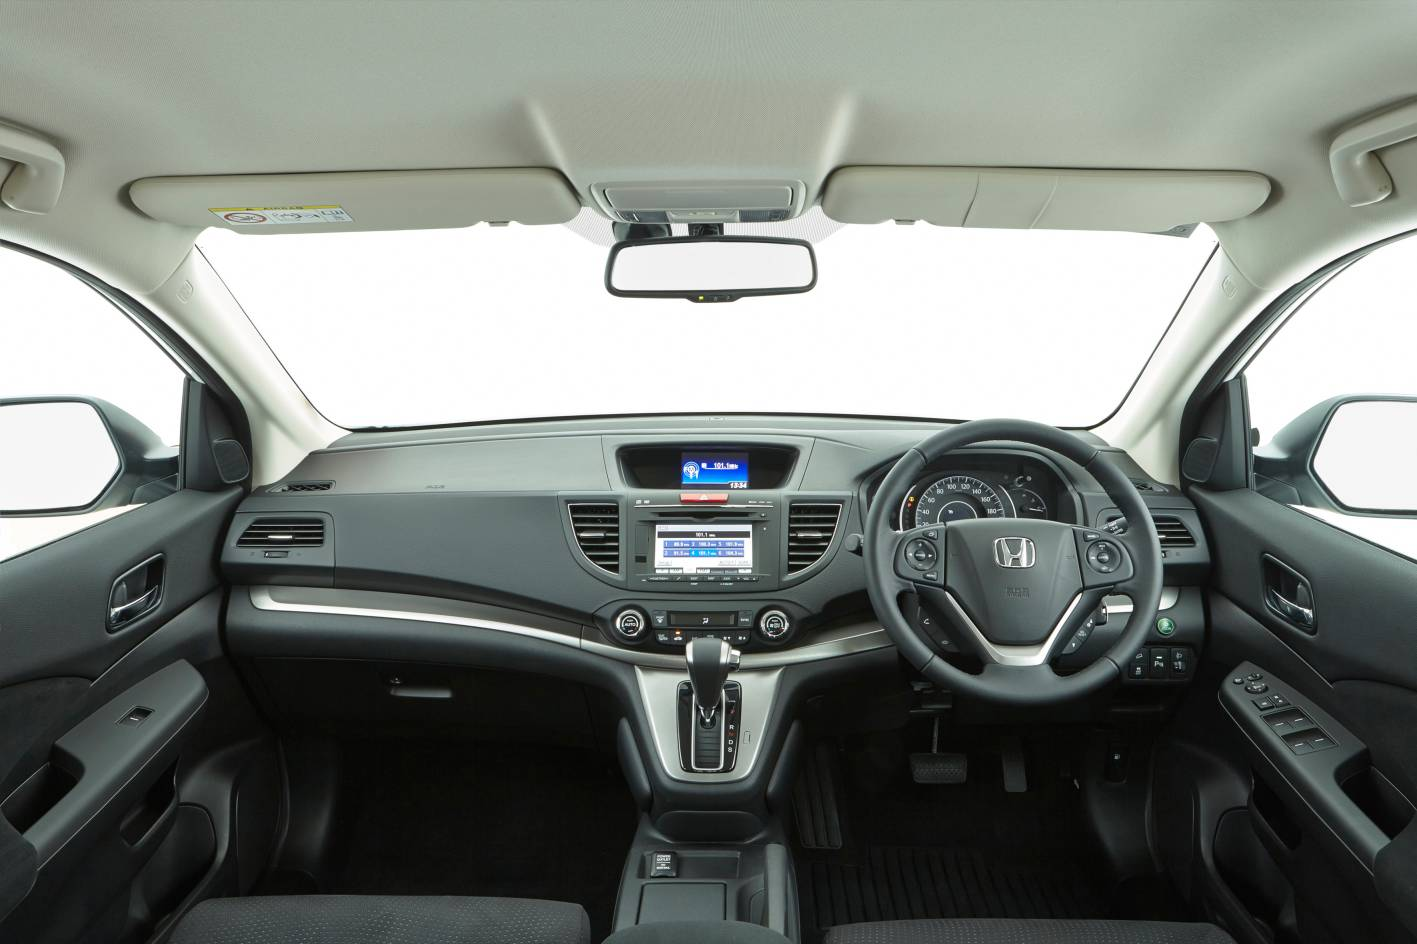 2014 honda cr v review specs autos post for Interior honda crv